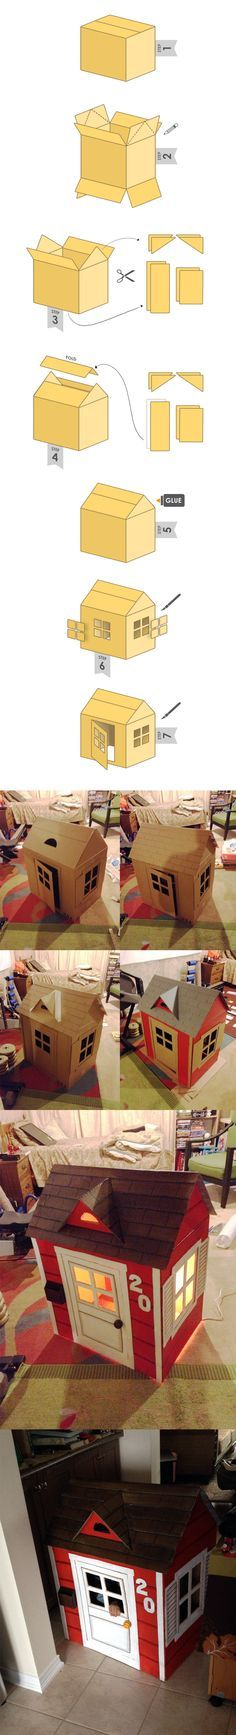 Ideas For Diy Box Carton Cardboard Playhouse Cardboard Box Houses, Cardboard Playhouse, Cardboard Crafts, Paper Crafts, Cardboard Dollhouse, Cat Playhouse, Playhouse Ideas, Cardboard Furniture, Woodworking Furniture